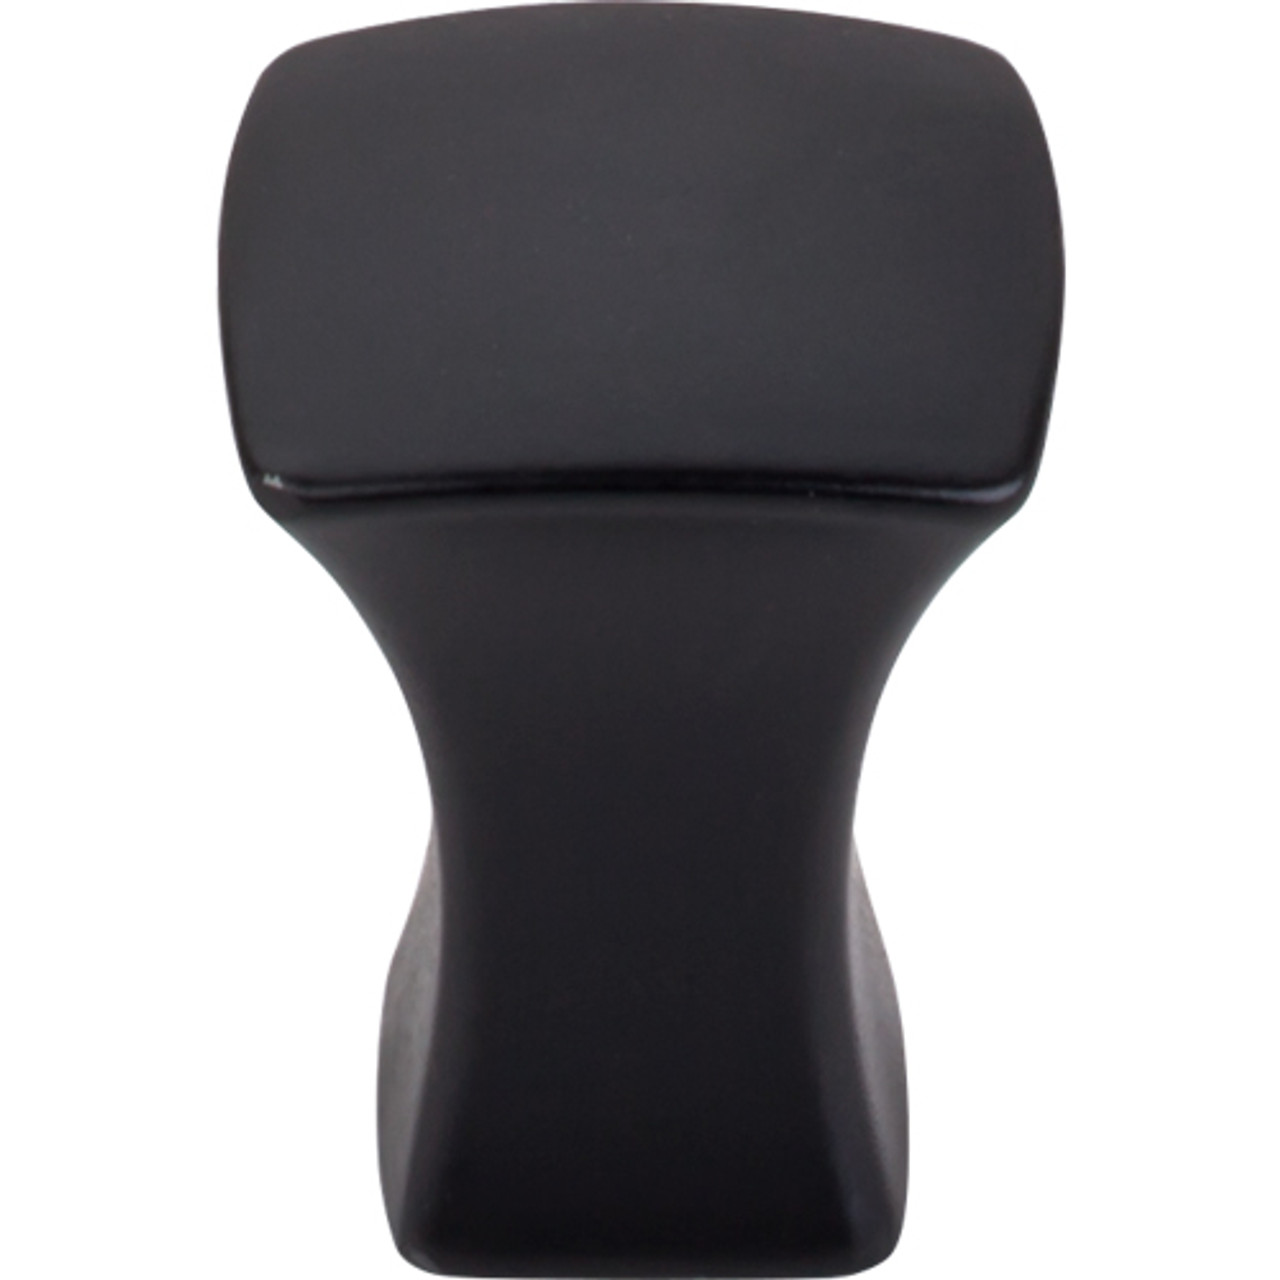 "Top Knobs - Glacier Knob 3/4"" - Flat Black (TKTK550BLK)"